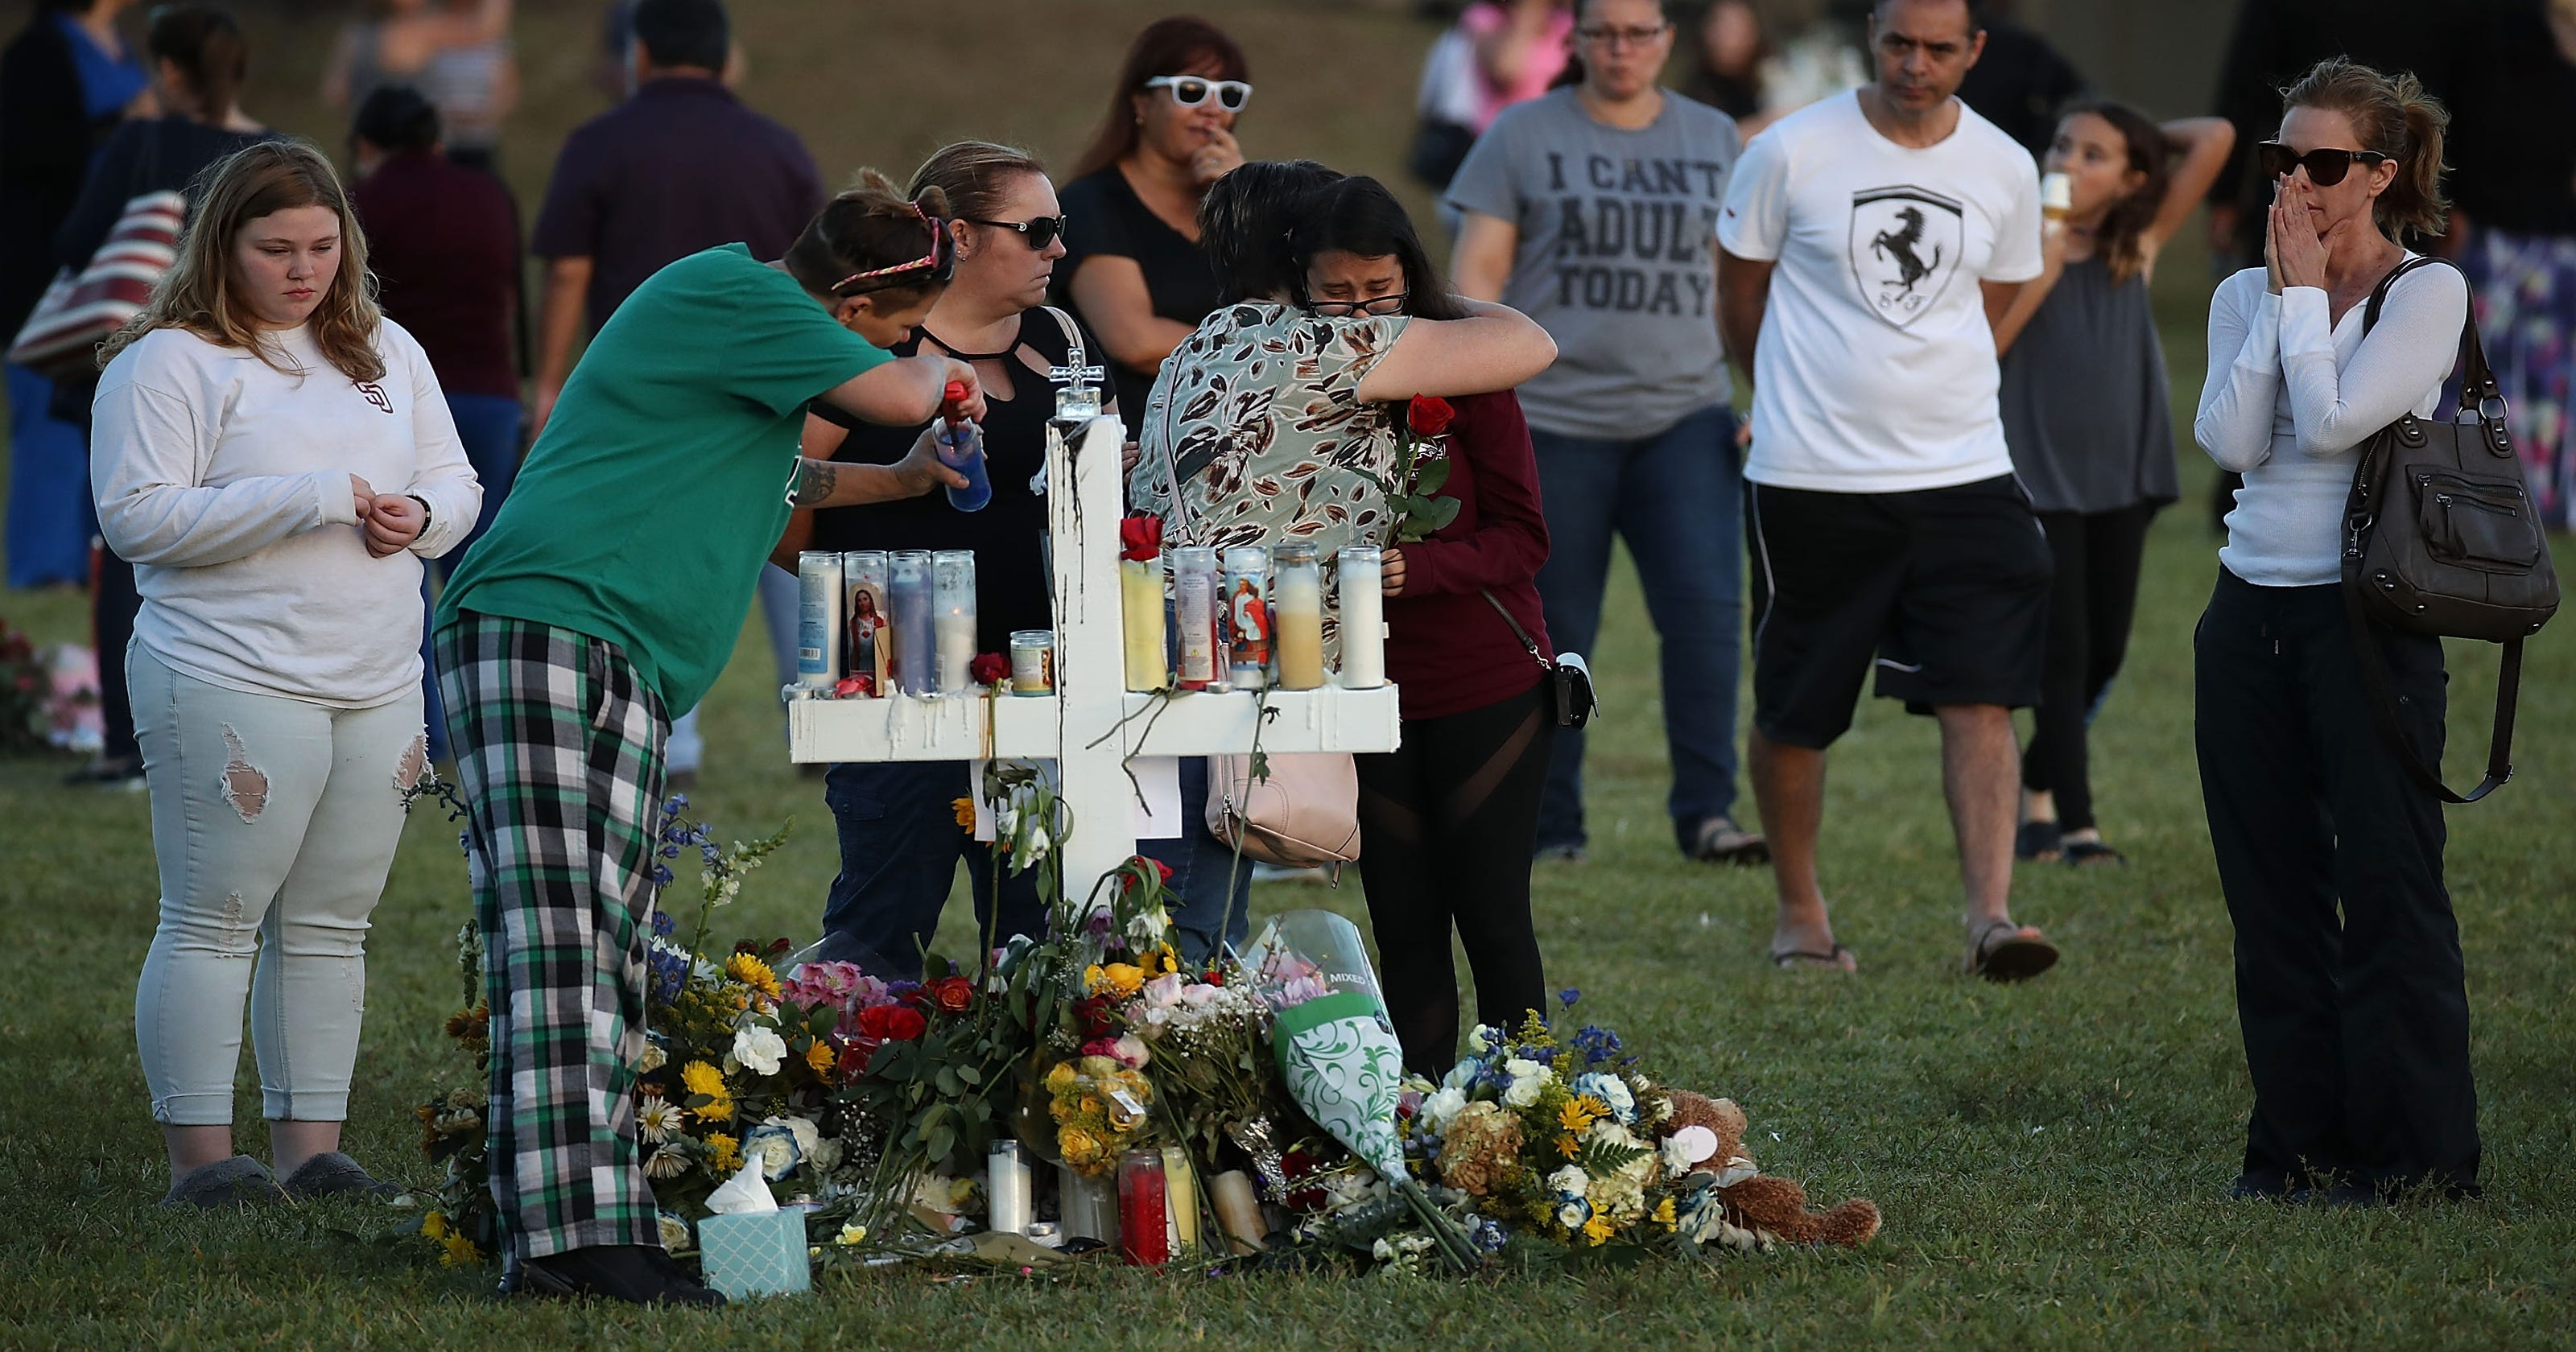 Florida school shooting suspect was a monster living under our roof izmirmasajfo